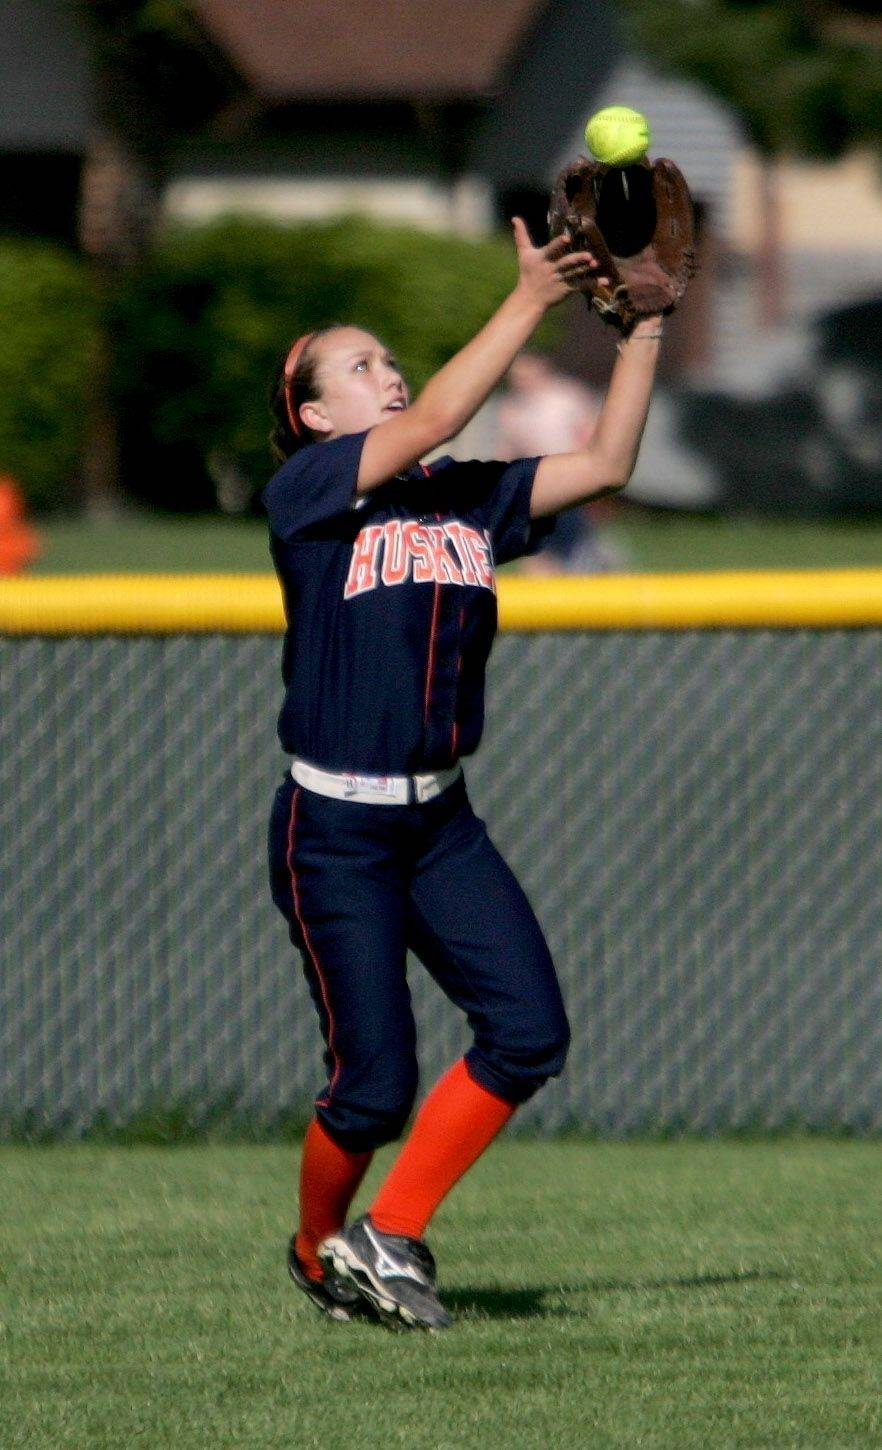 Caitlyn Warren of Naperville North makes a catch in the outfield against Naperville Central during Monday's softball game.